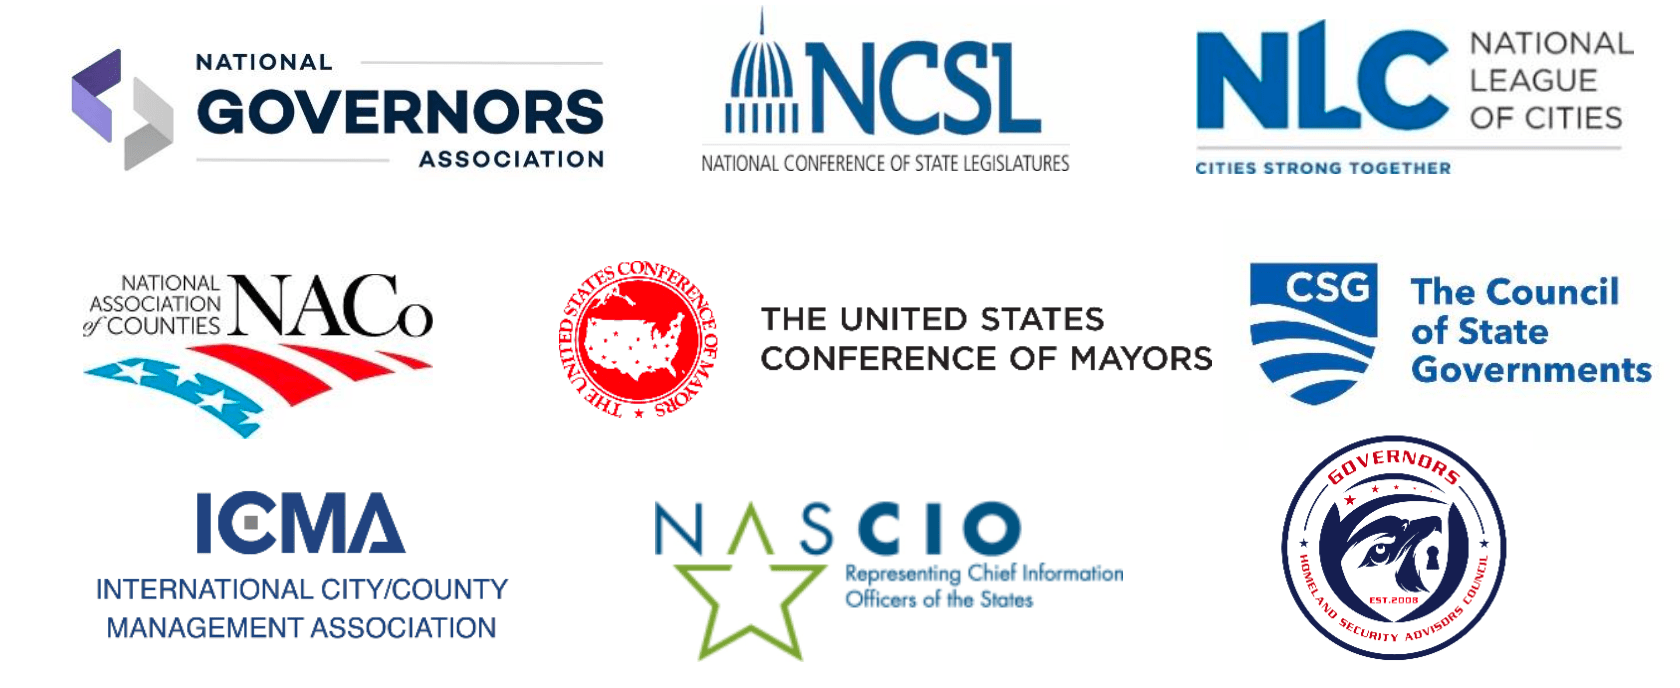 State and Local Coalition to Congress: We Need Help With Cybersecurity